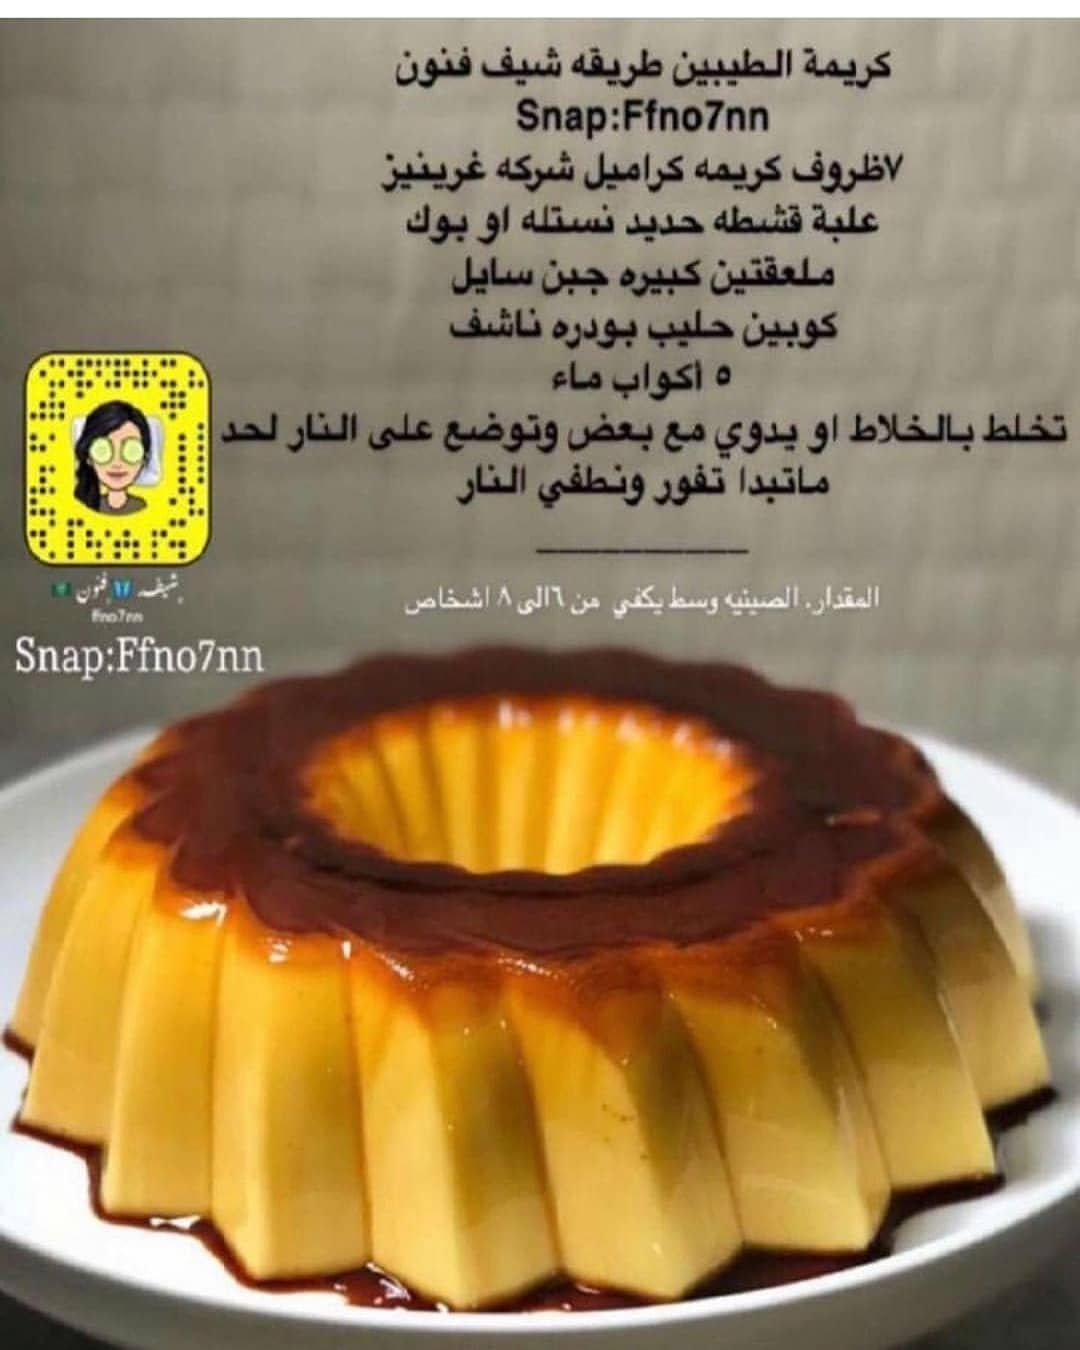 2 Likes 0 Comments Umfahad 65 On Instagram Sweets Recipes Coffee Drink Recipes Food Recipies